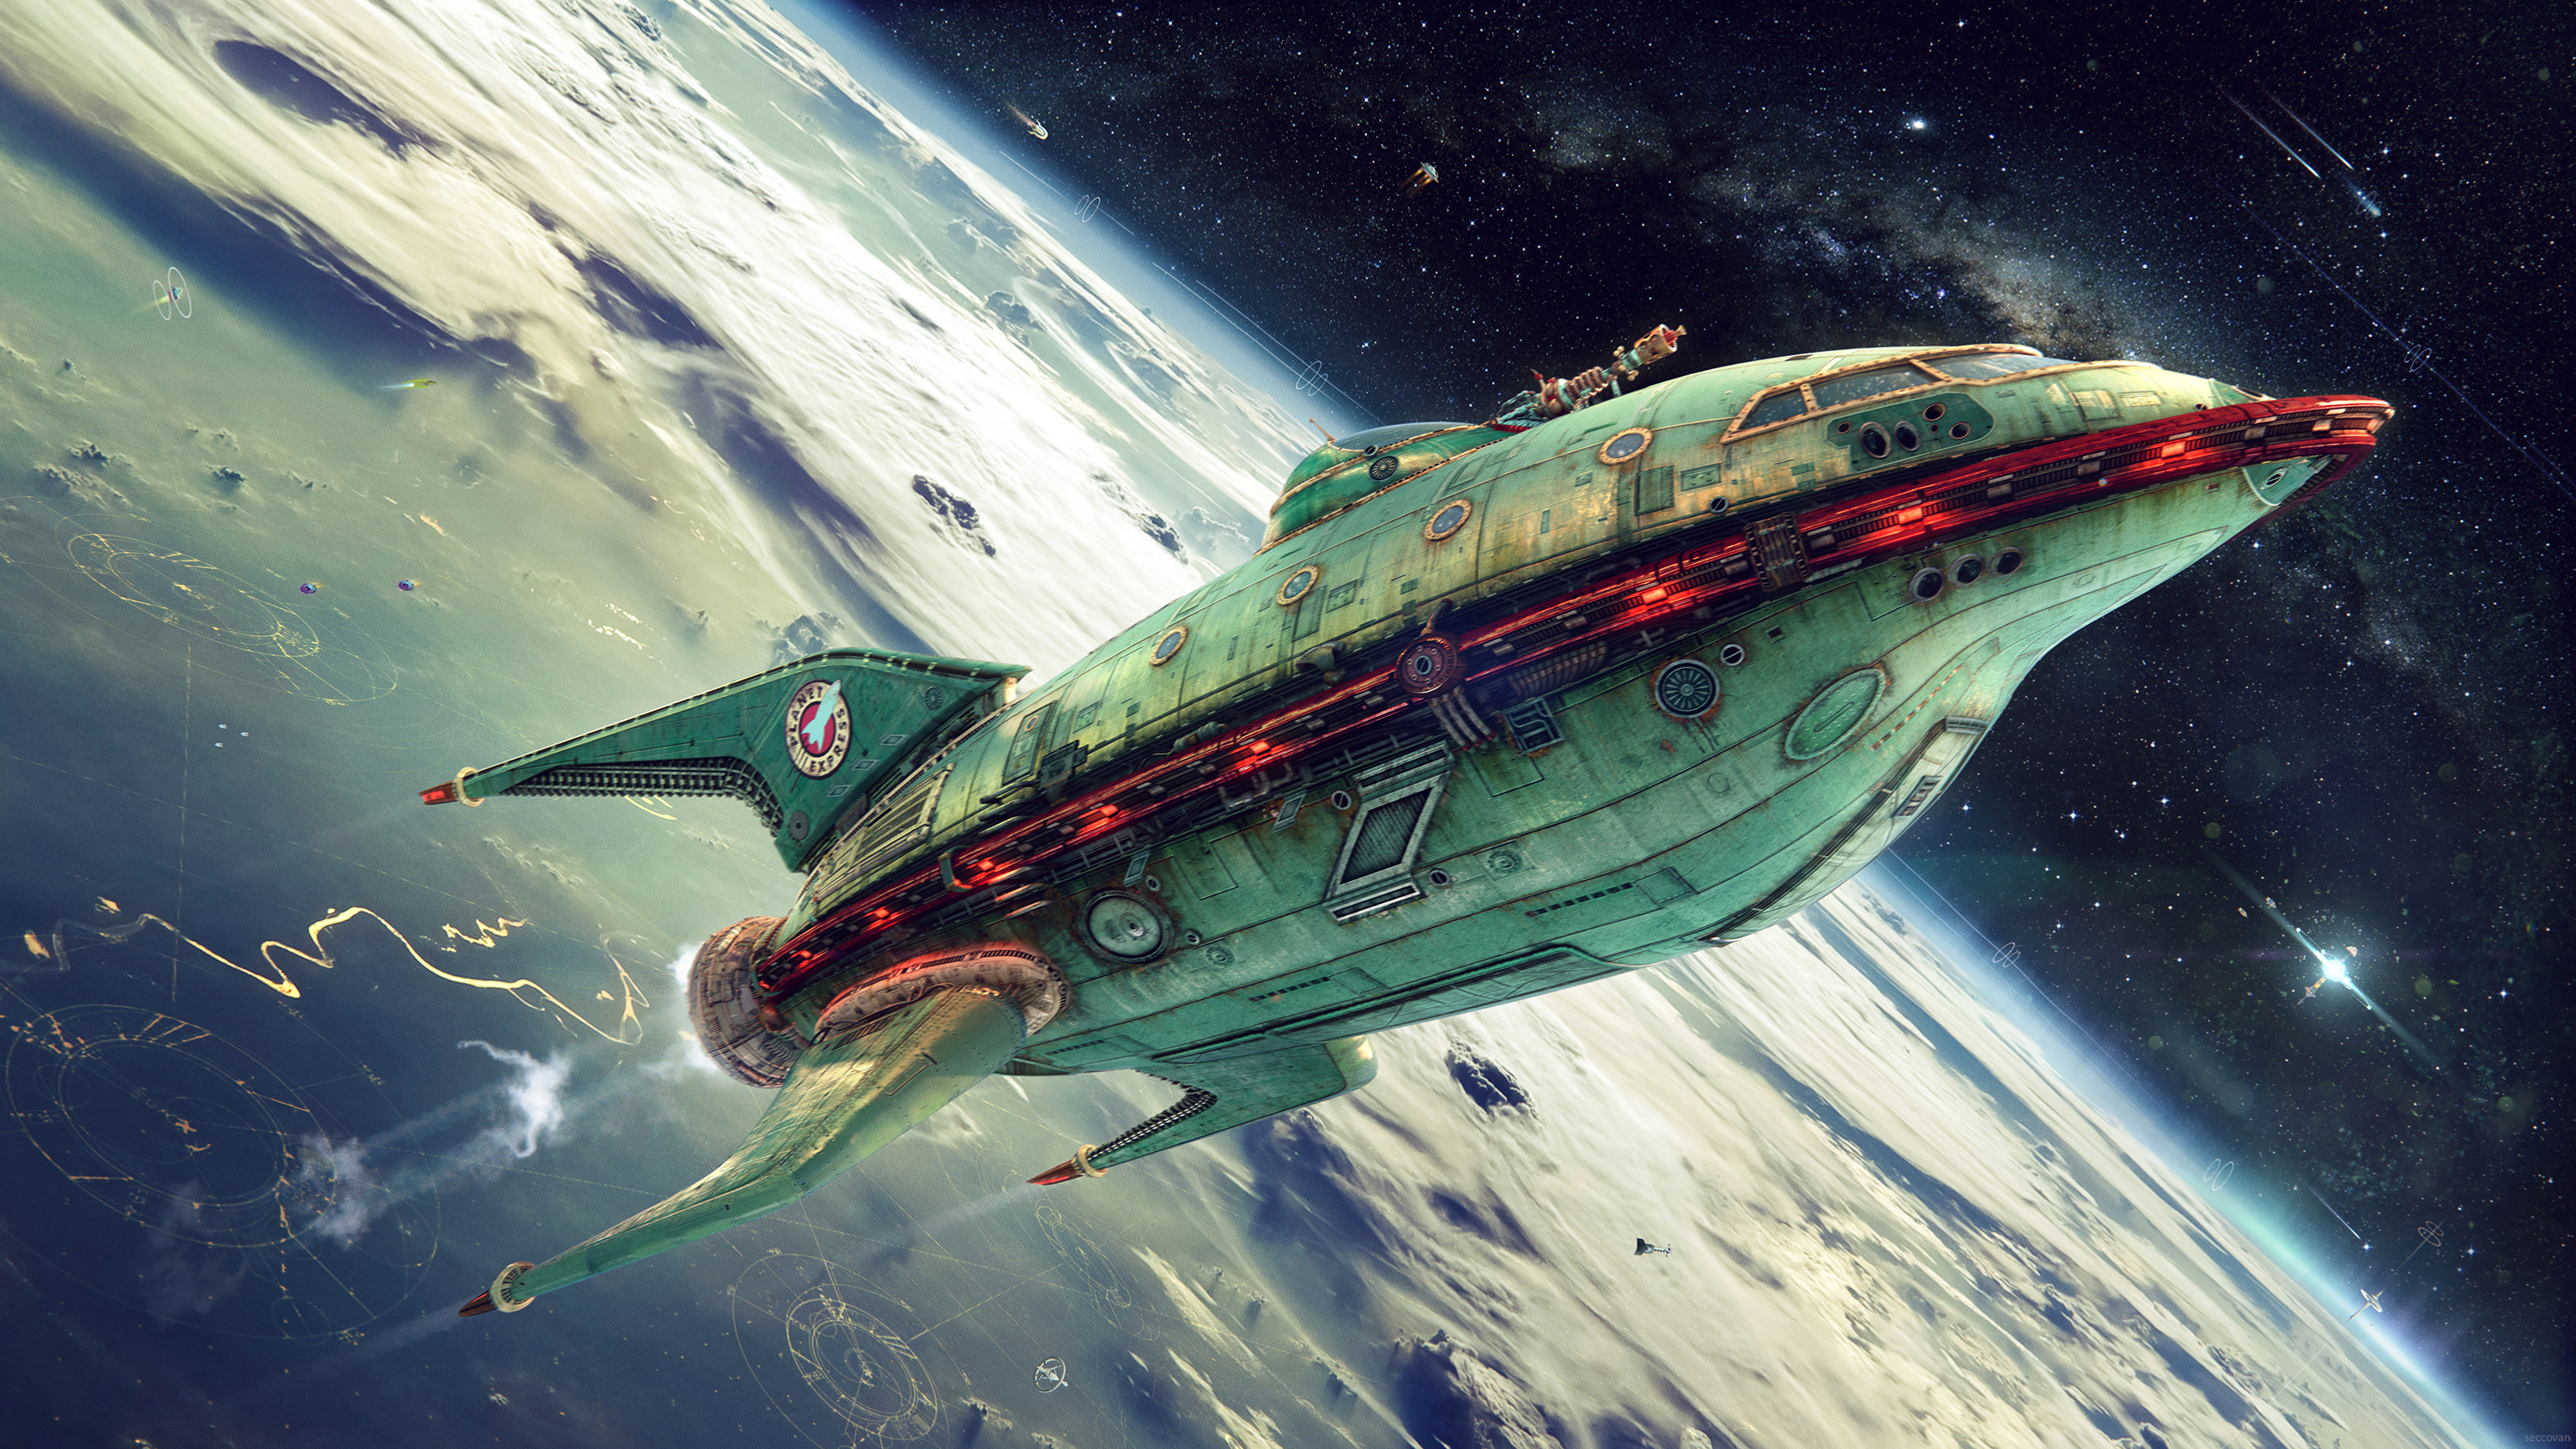 Futurama space ship